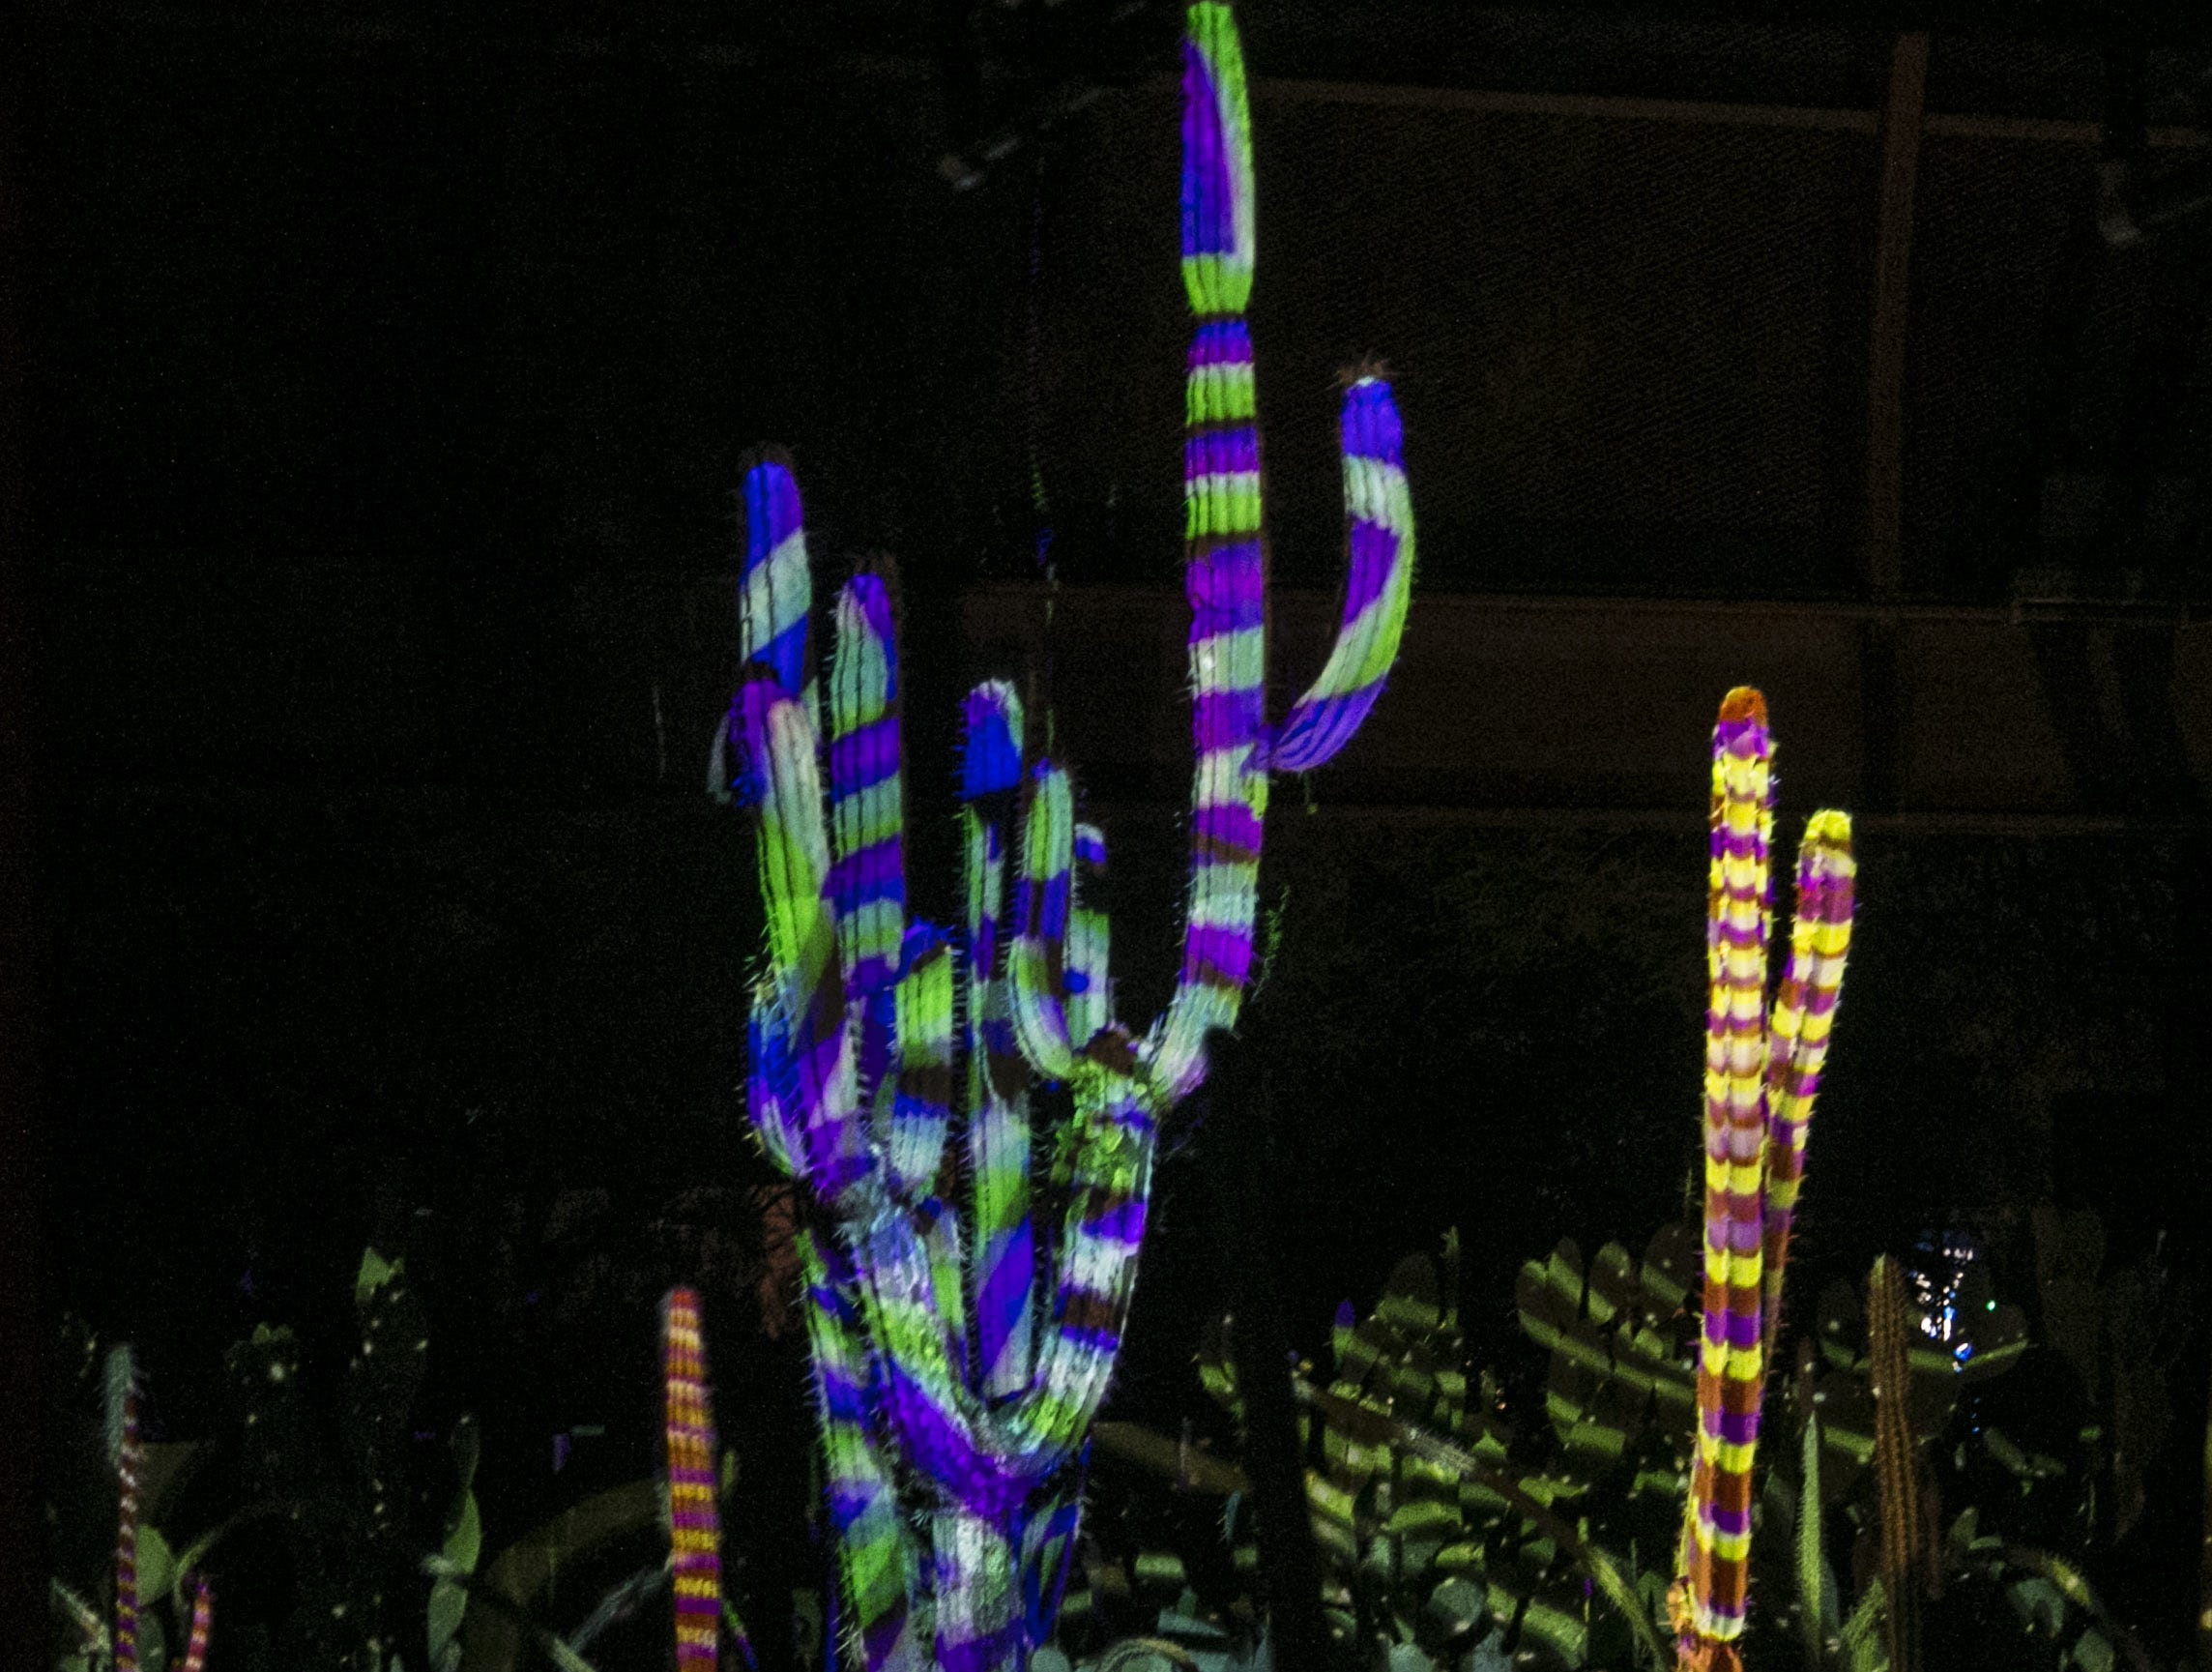 Lights from the new exhibit, 'Electric Desert' wash over the cacti at the Desert Botanical Garden in Phoenix, Ariz. on Sept. 27, 2018.